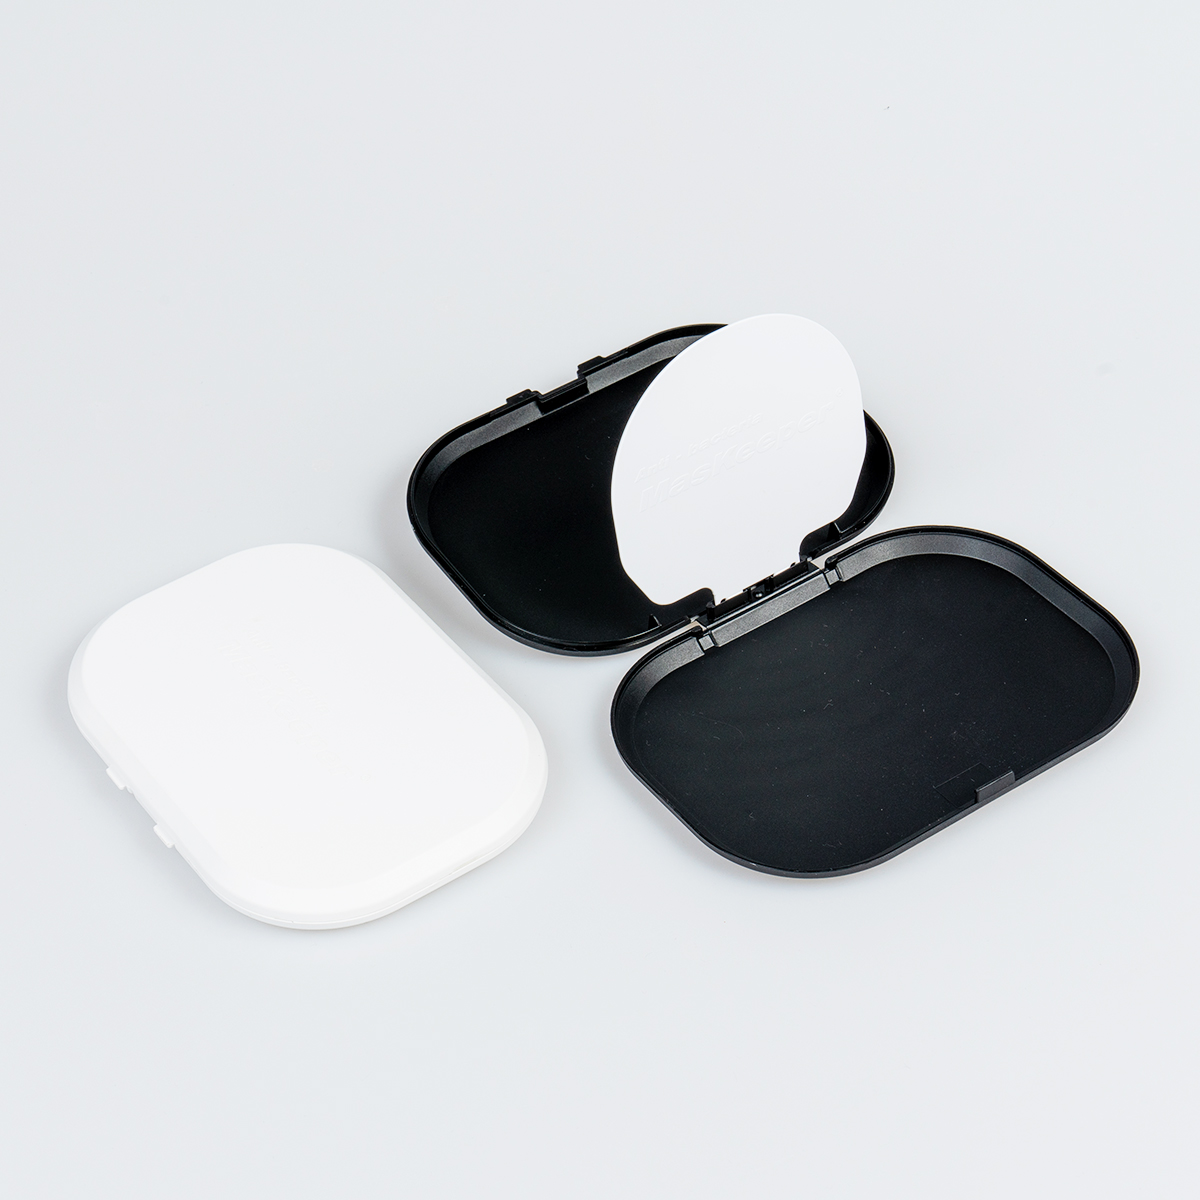 INNORES Antibacterial mask case Maskeeper